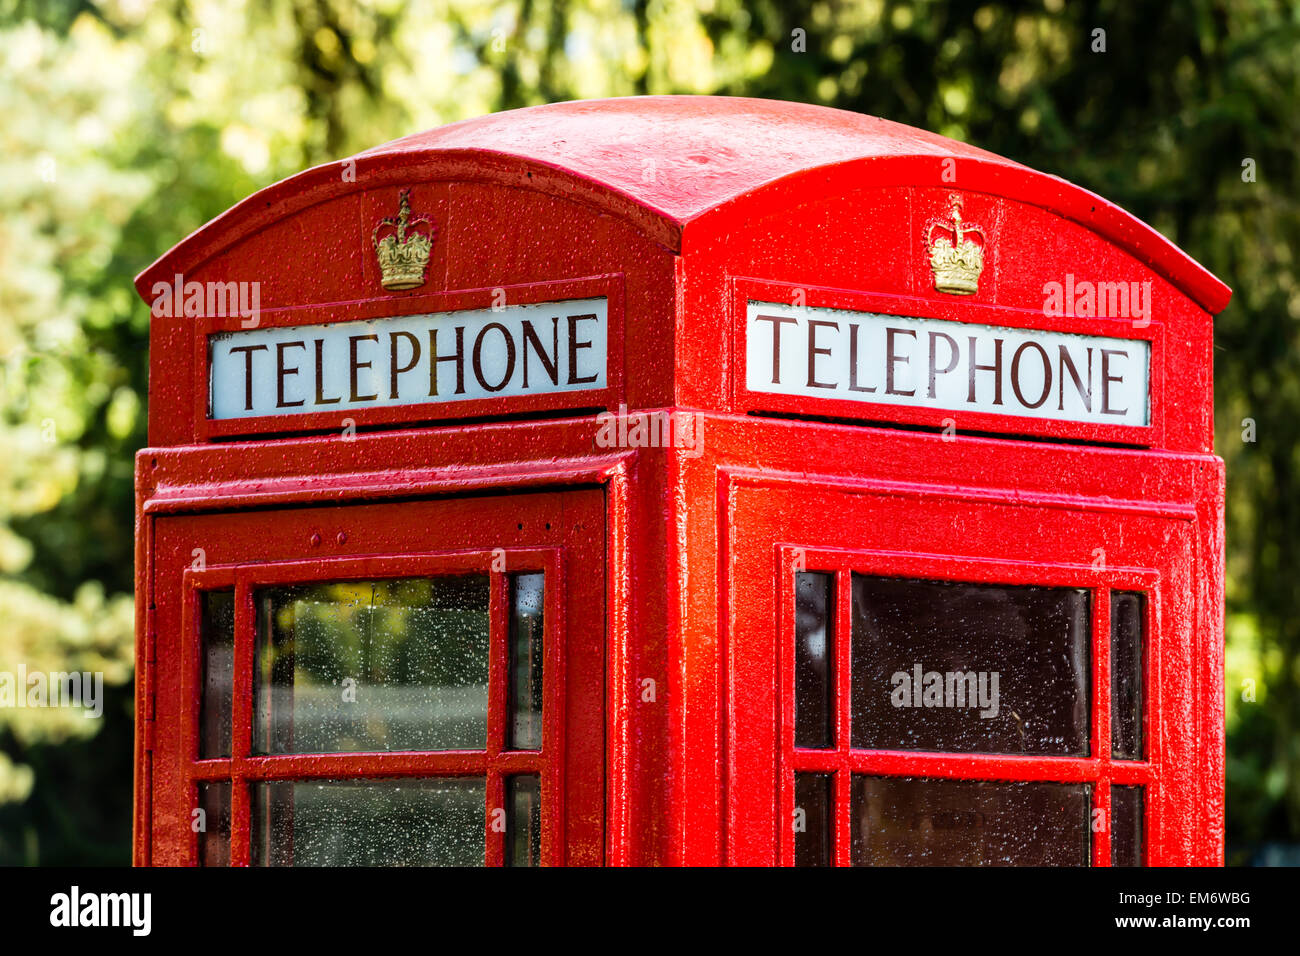 The red telephone box, a telephone kiosk for a public telephone, was a familiar sight on the streets of the United - Stock Image